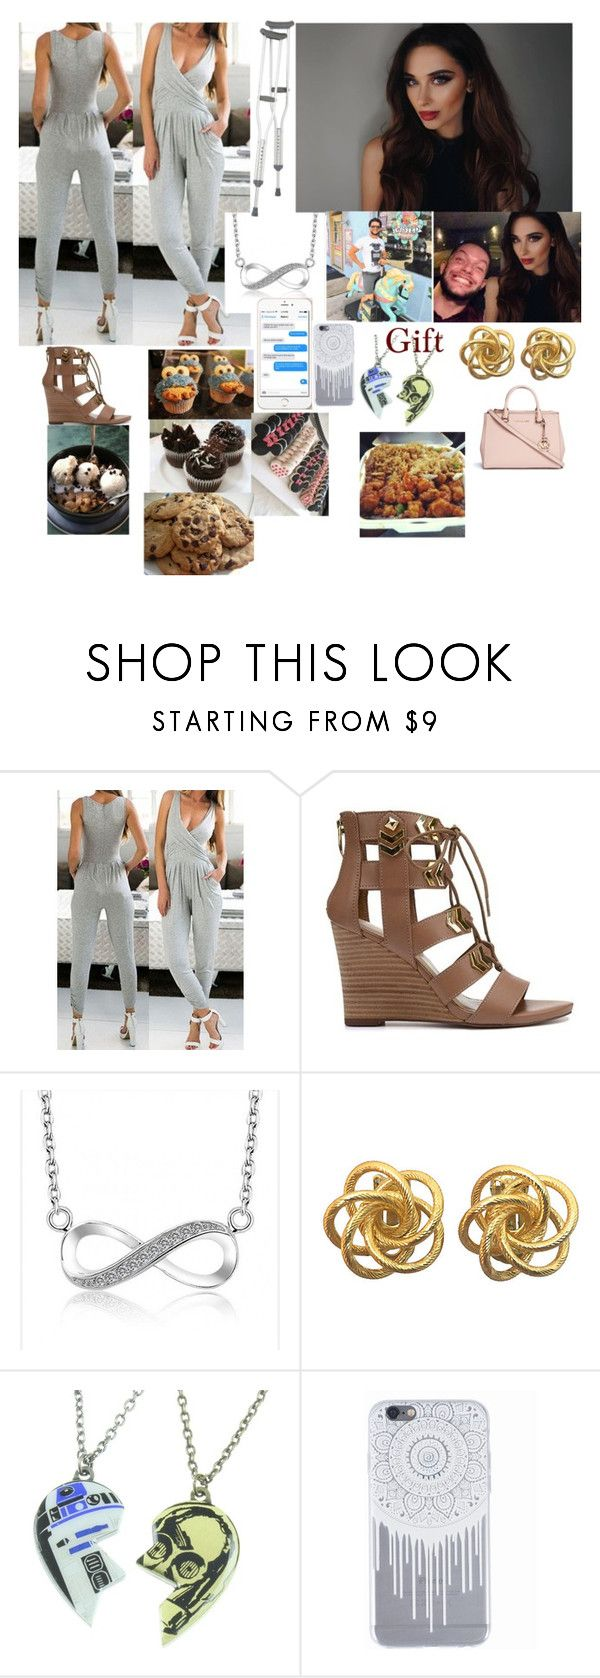 """Oh Finn"" by banks-on-it ❤ liked on Polyvore featuring R2 and Michael Kors"